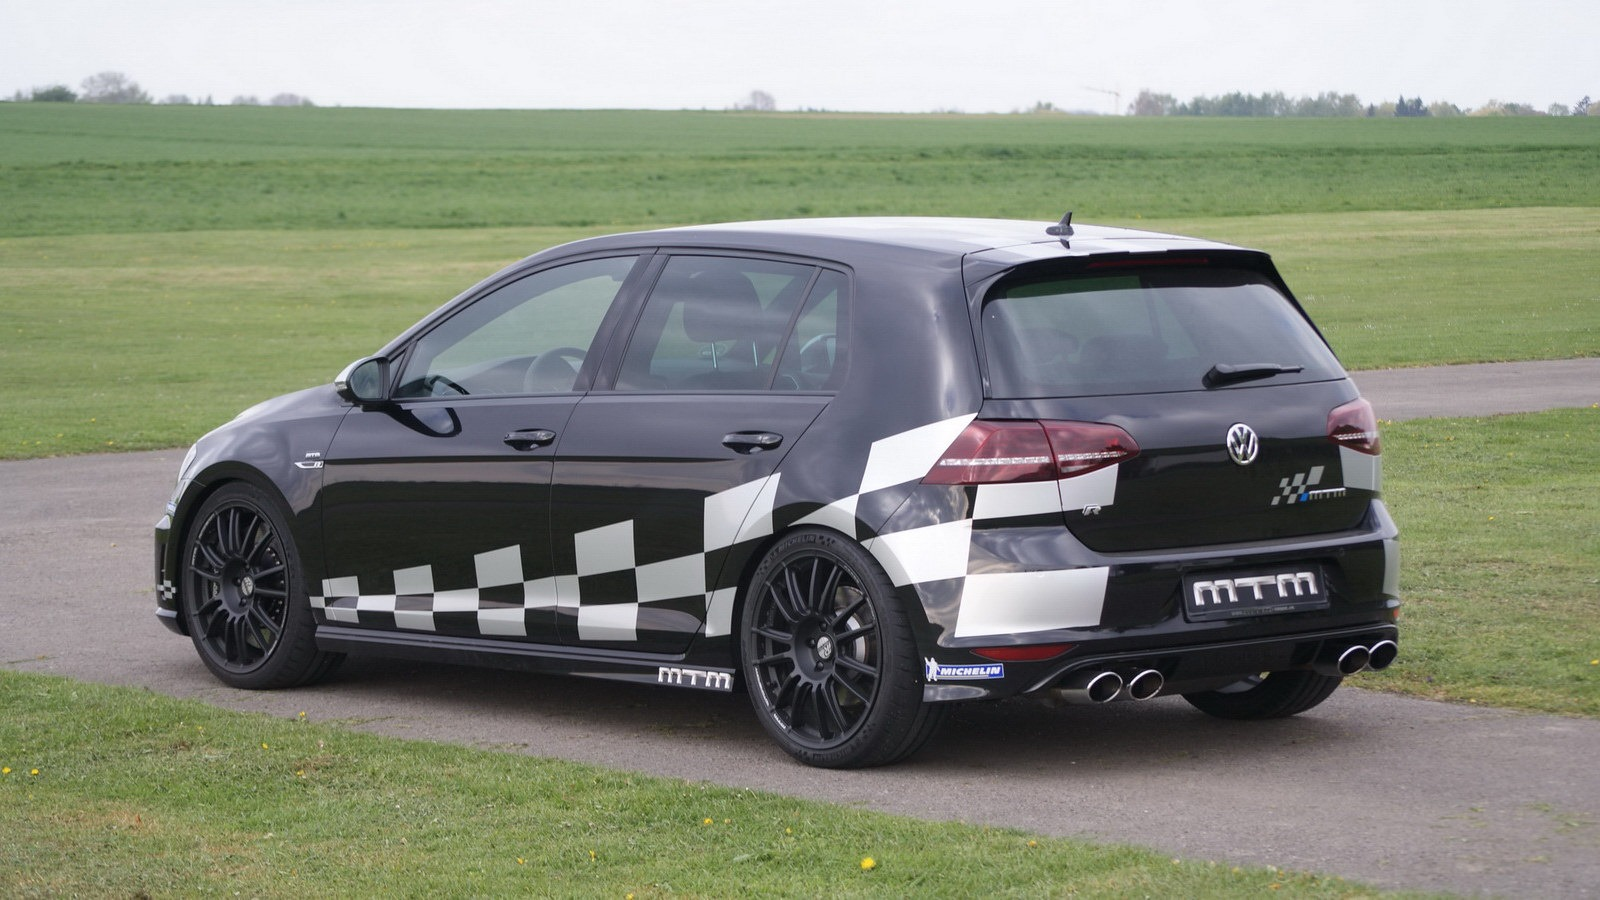 mtm tuned vw golf r churns out 360 bhp autoevolution. Black Bedroom Furniture Sets. Home Design Ideas